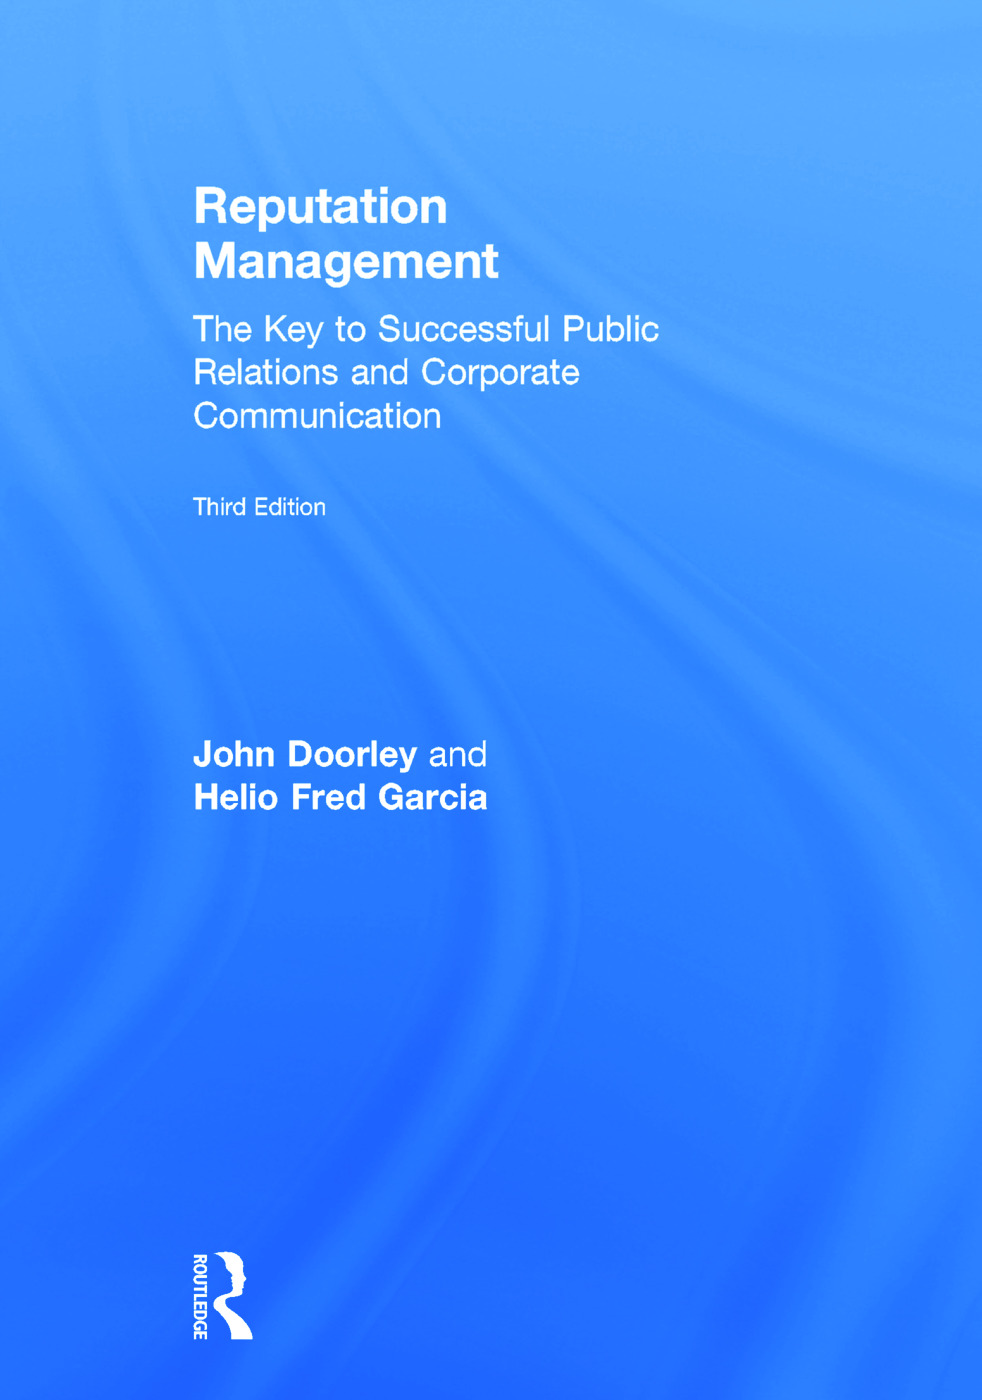 Reputation Management: The Key to Successful Public Relations and Corporate Communication book cover